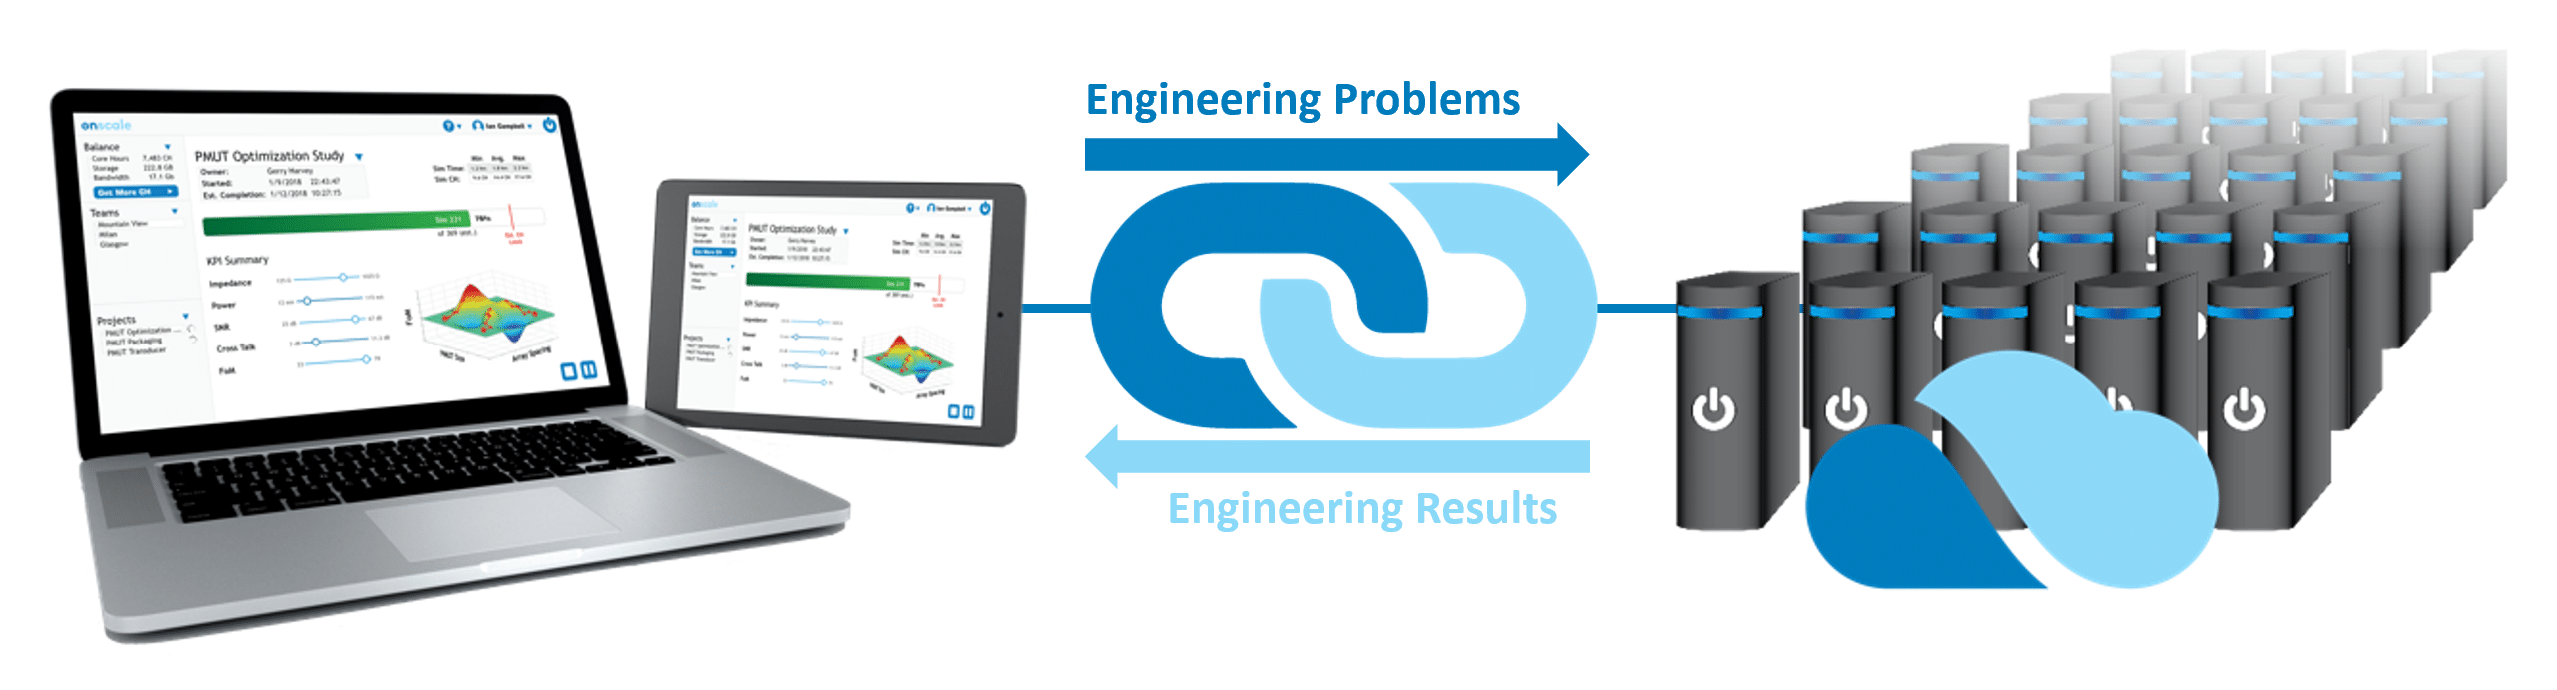 Cloud Engineering Simulation Platform